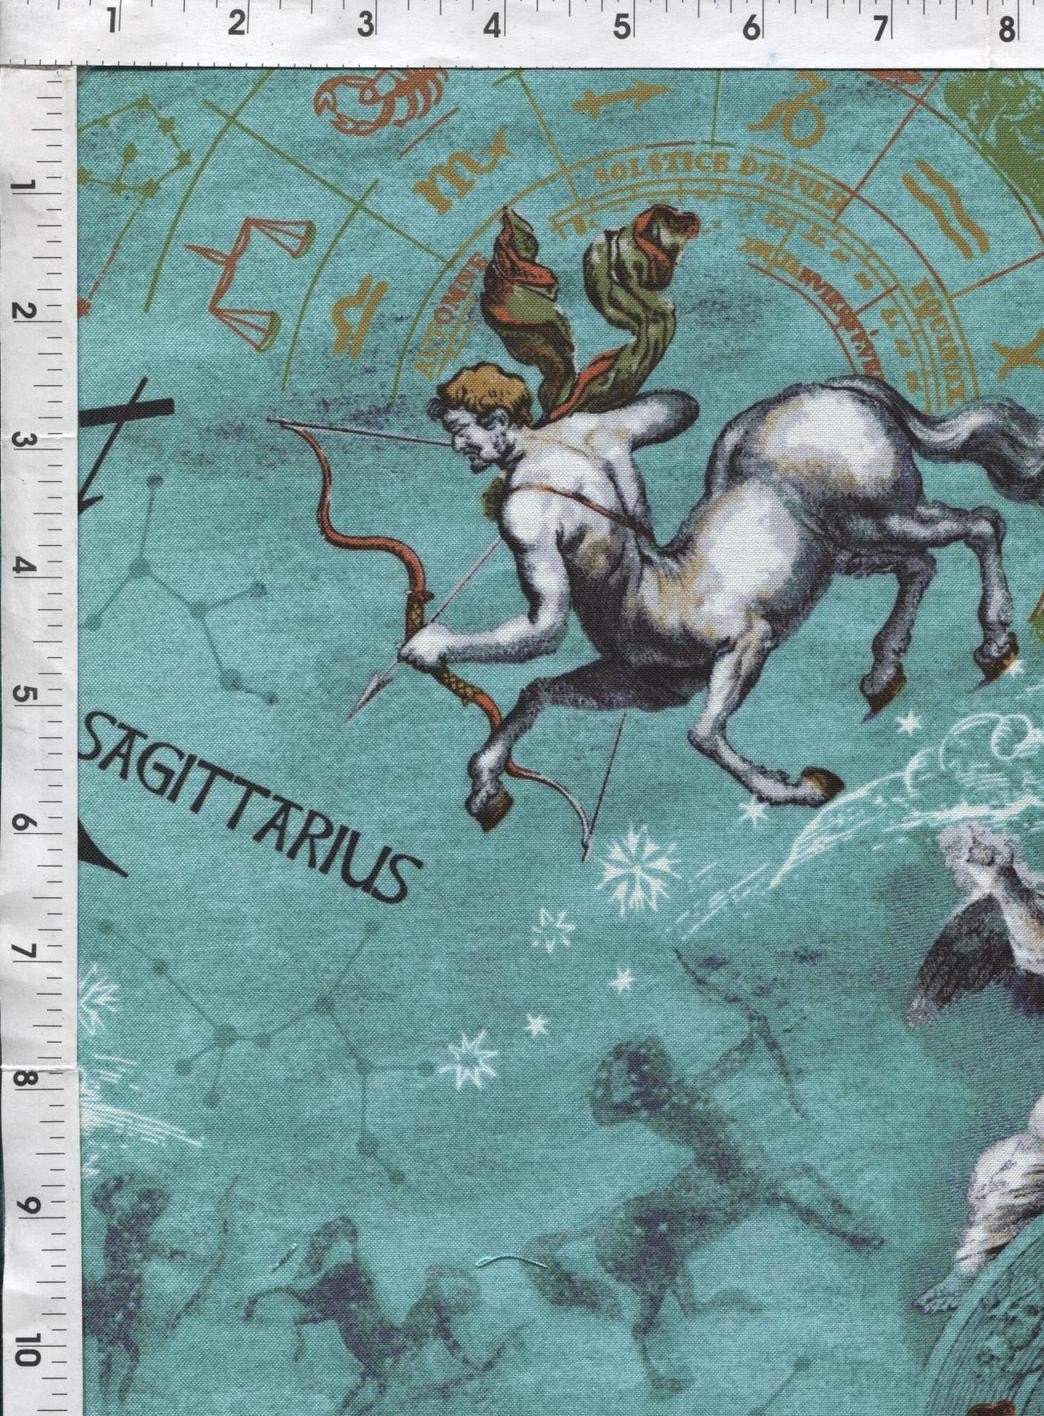 Sagittarius fabric by the yard astrology fabric horoscope for Astrology fabric